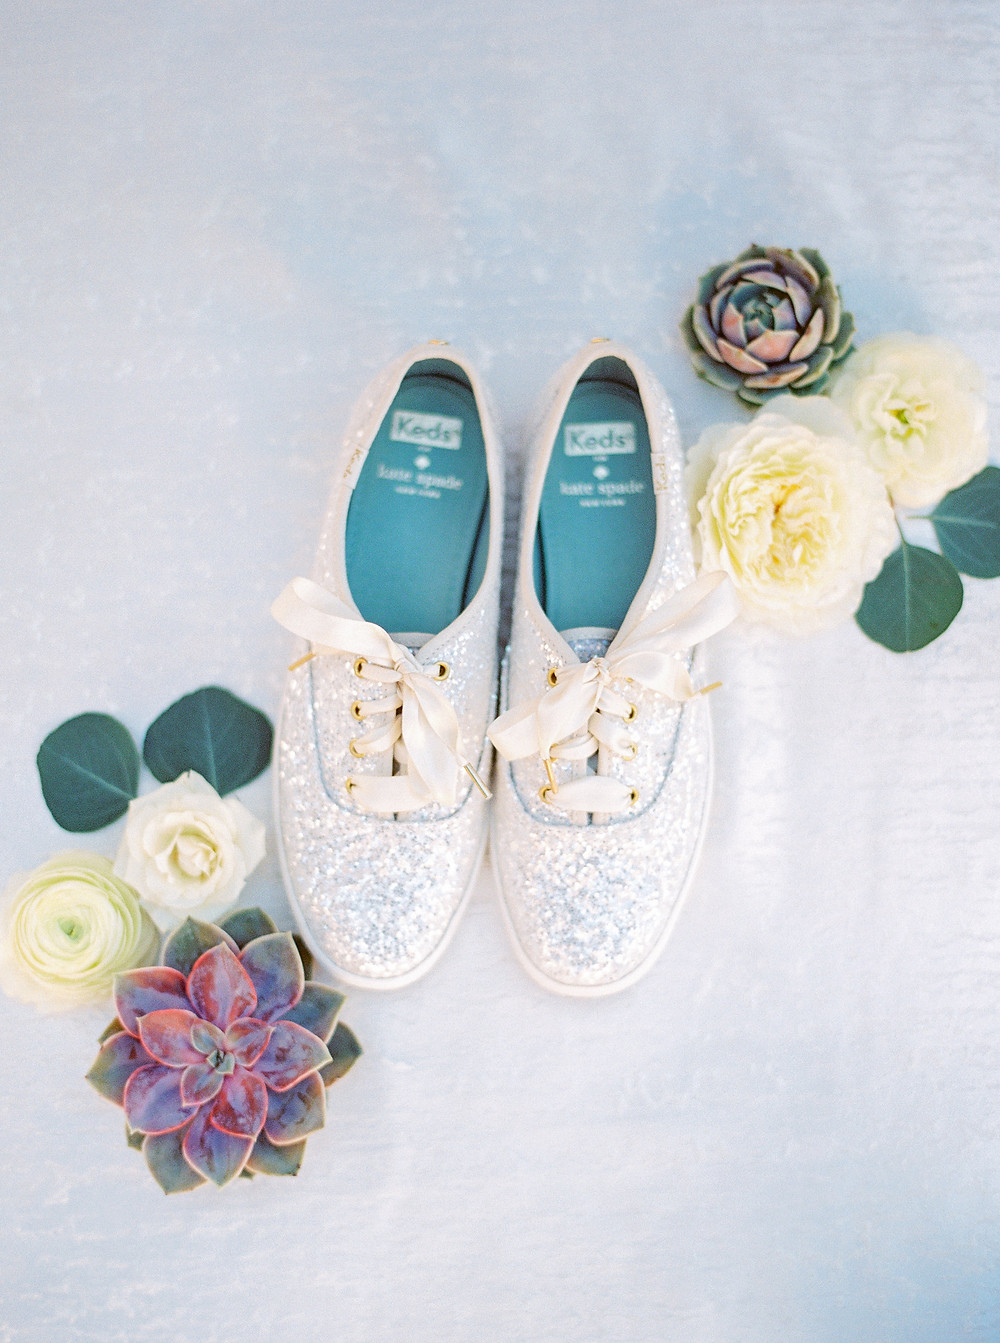 Four Seasons in Scottsdale Arizona Bride Details, Kate Spade Wedding Shoes